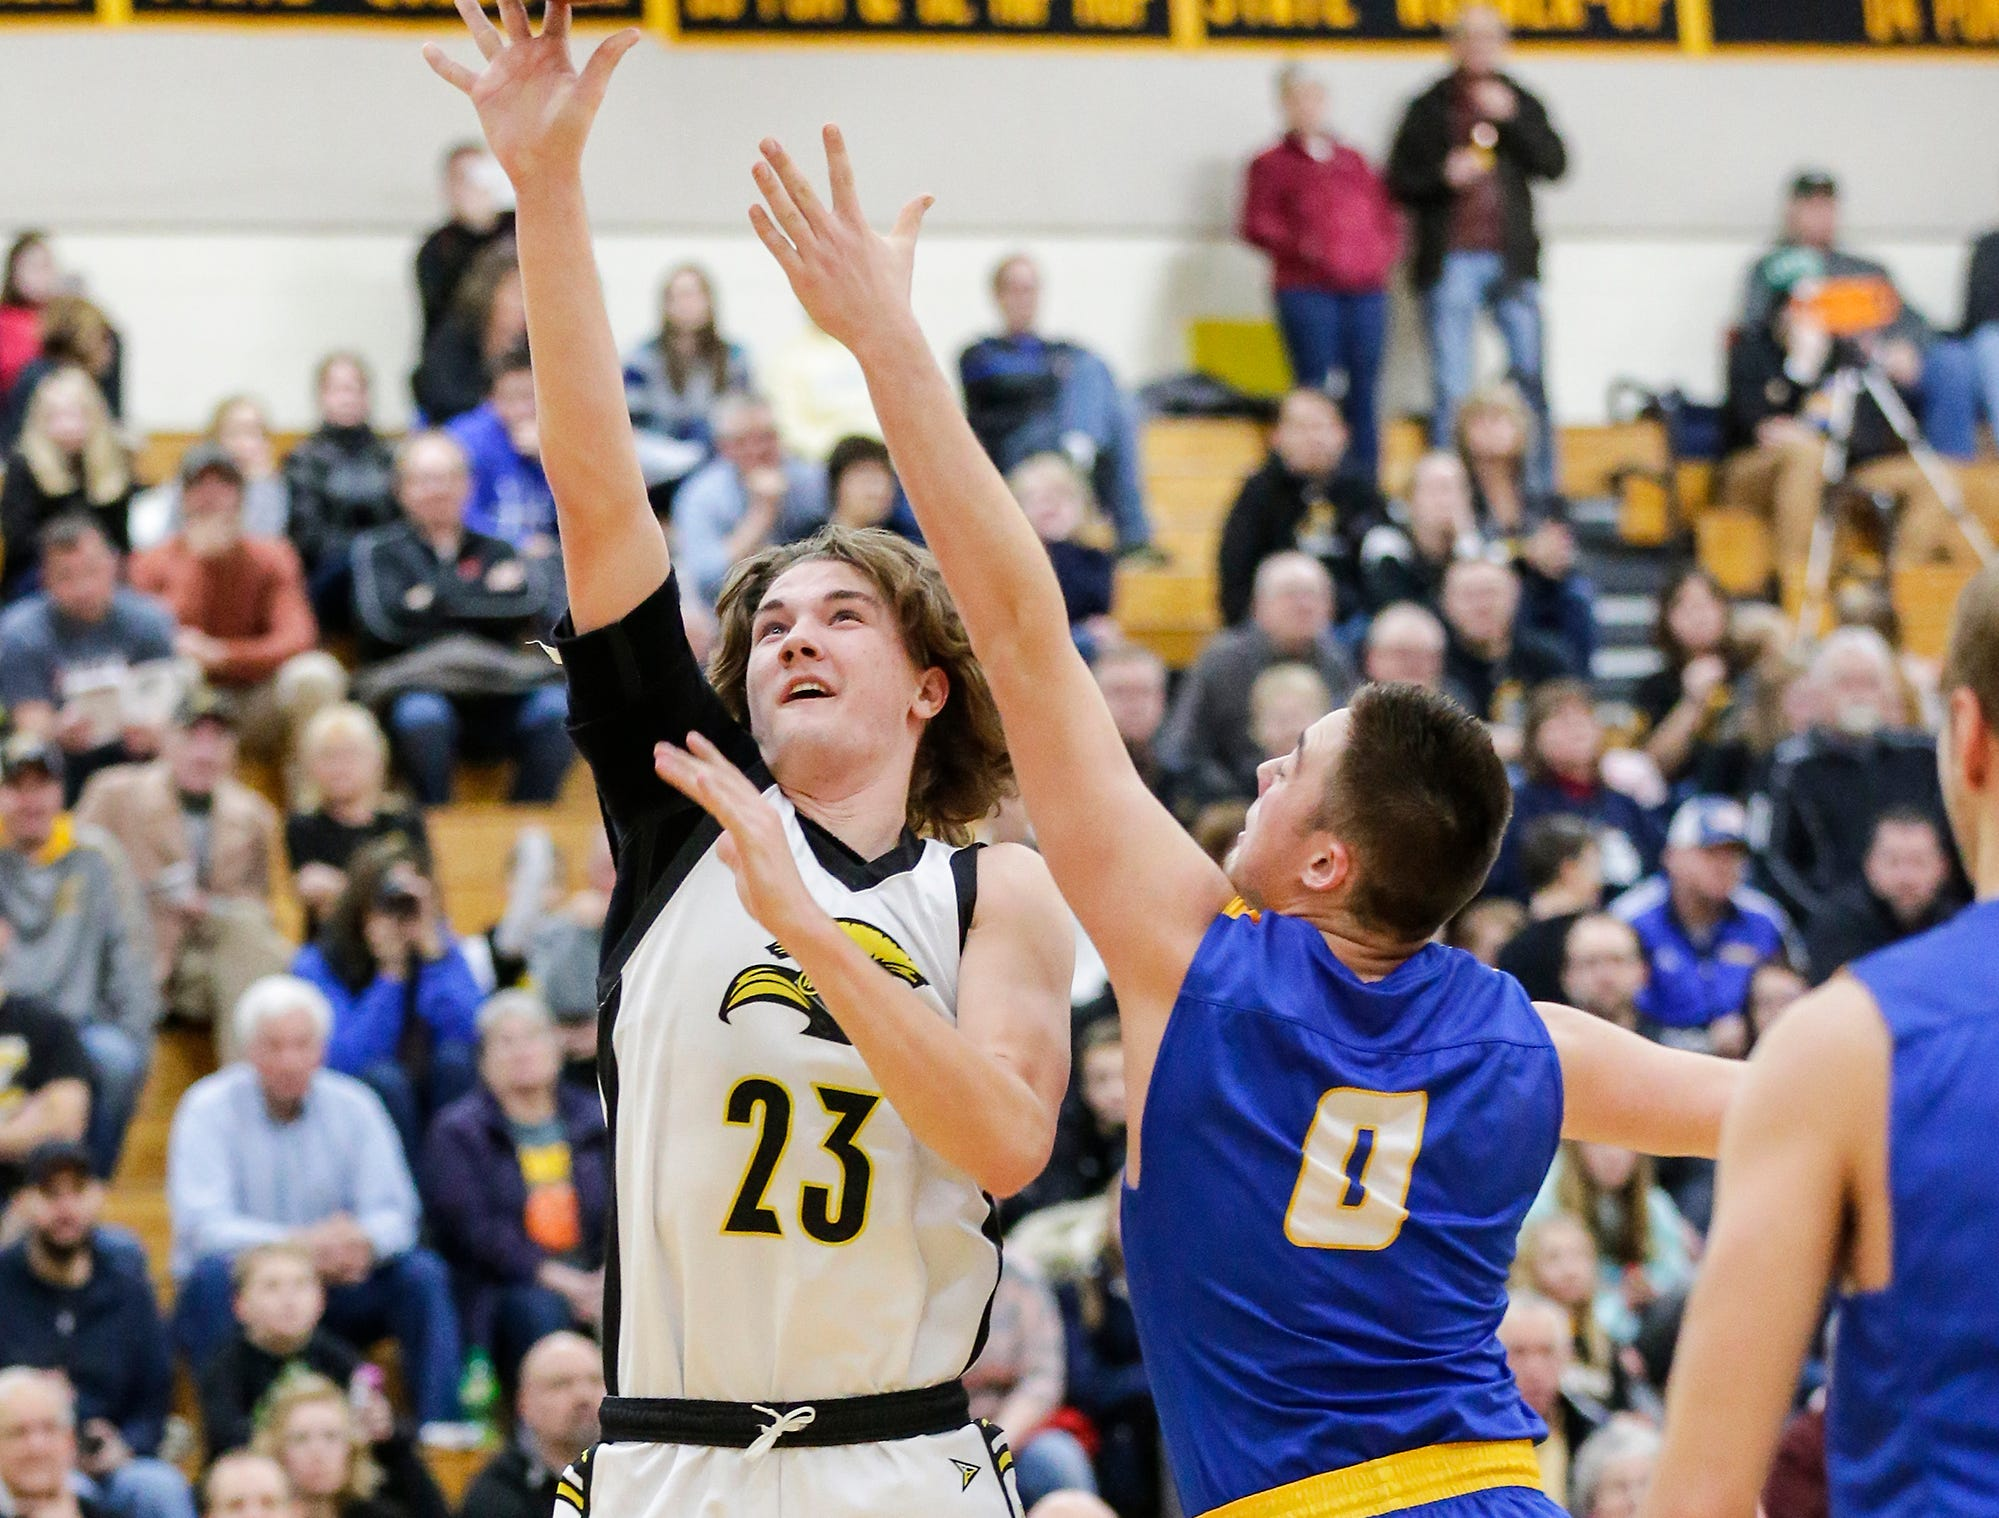 Waupun High School boys basketball's Reece Homan goes up for a basket against Campbellsport High School's Kade Walsh during their game Friday, December 14, 2018 in Waupun. Waupun won the game 64-33. Doug Raflik/USA TODAY NETWORK-Wisconsin